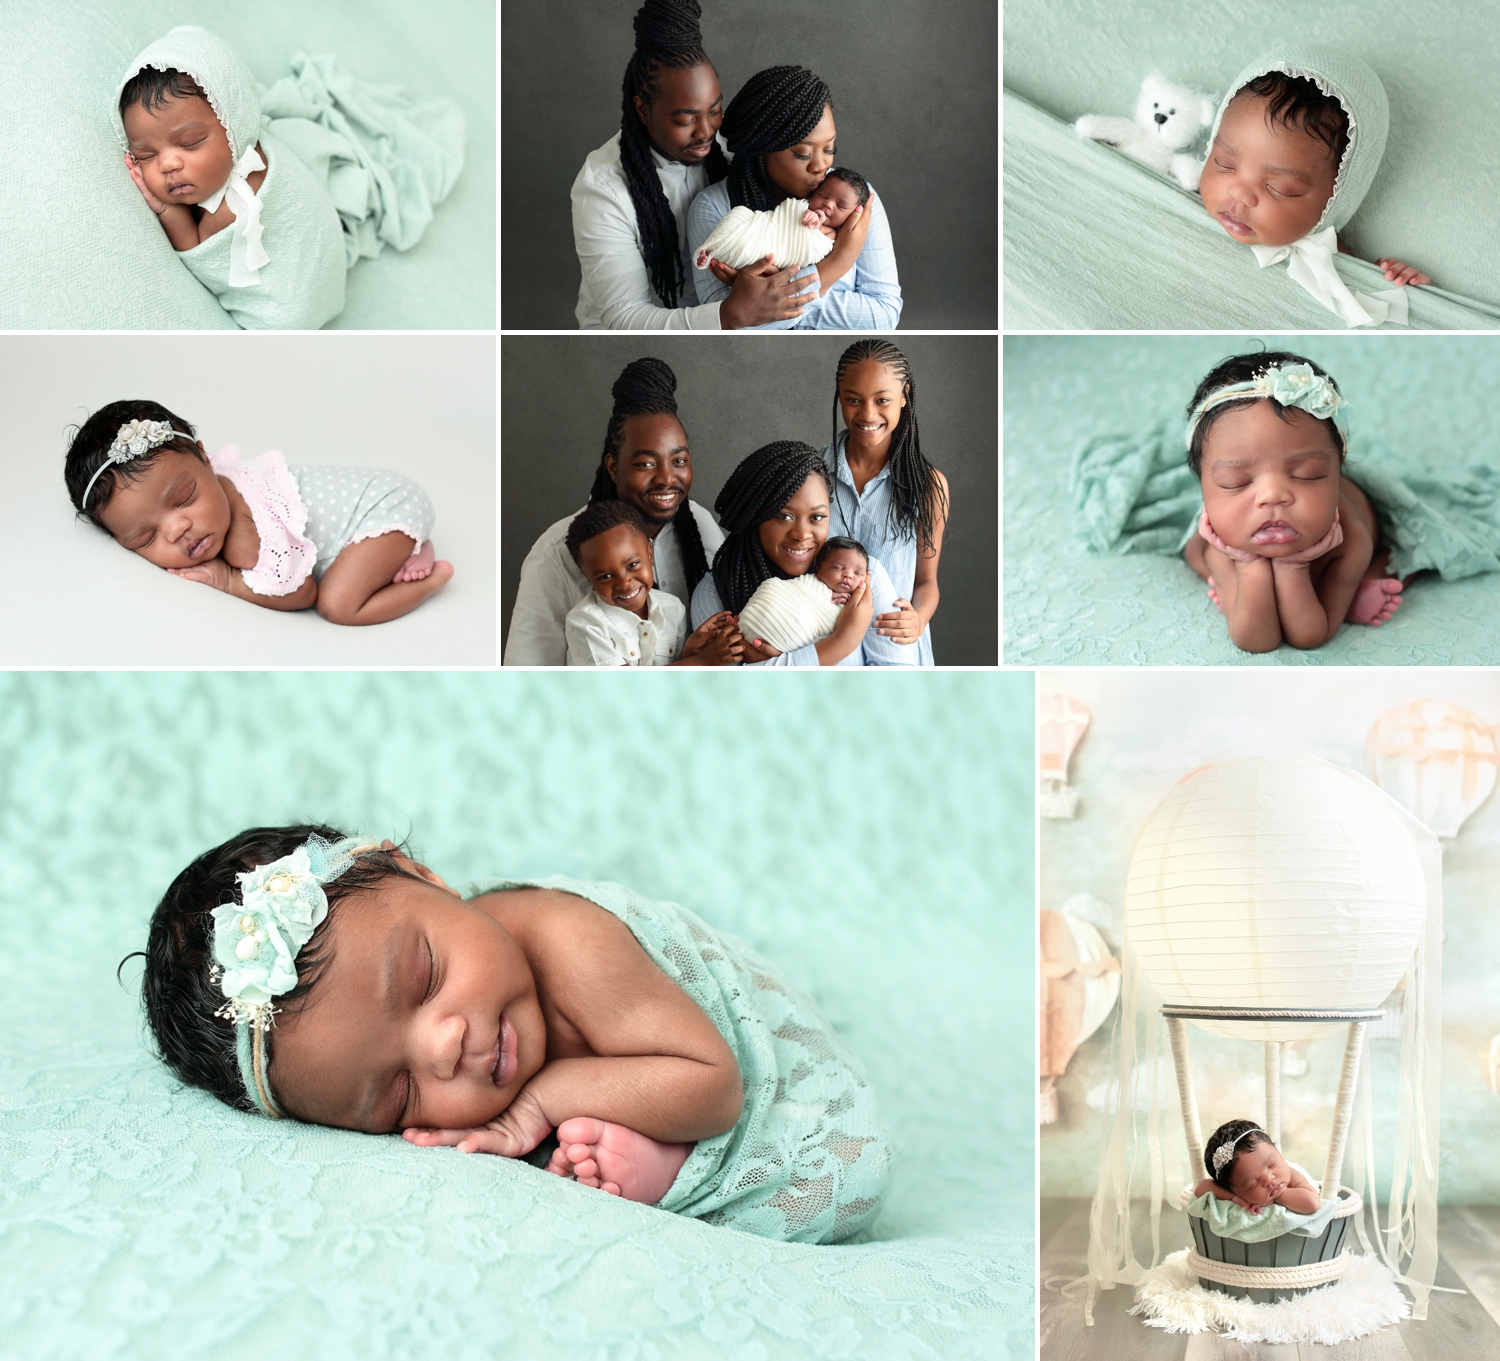 NEWBORN MENTORING : 1:1, 2:1, or GROUP WORKSHOP AVAILABLE. YOU WILL LEARN SAFE POSING, WRAPPING, SET STYLING, LIGHTING, SOOTHING TECHNIQUES, EDITING, and MORE